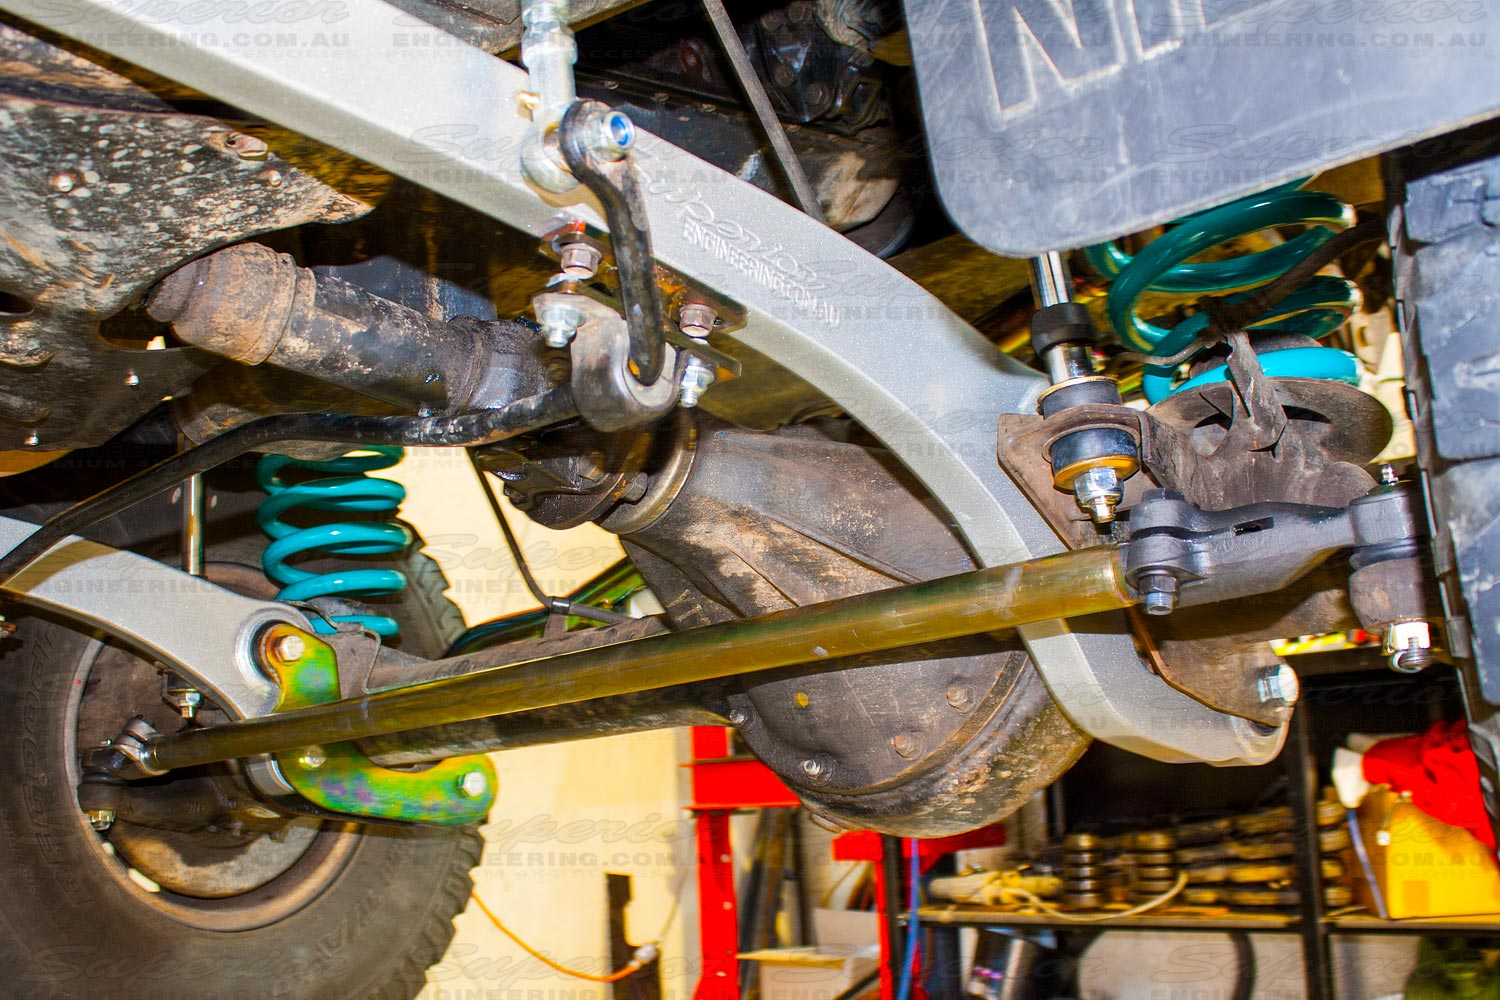 Heavy duty tie rod fitted to the steering system of a 4wd vehicle